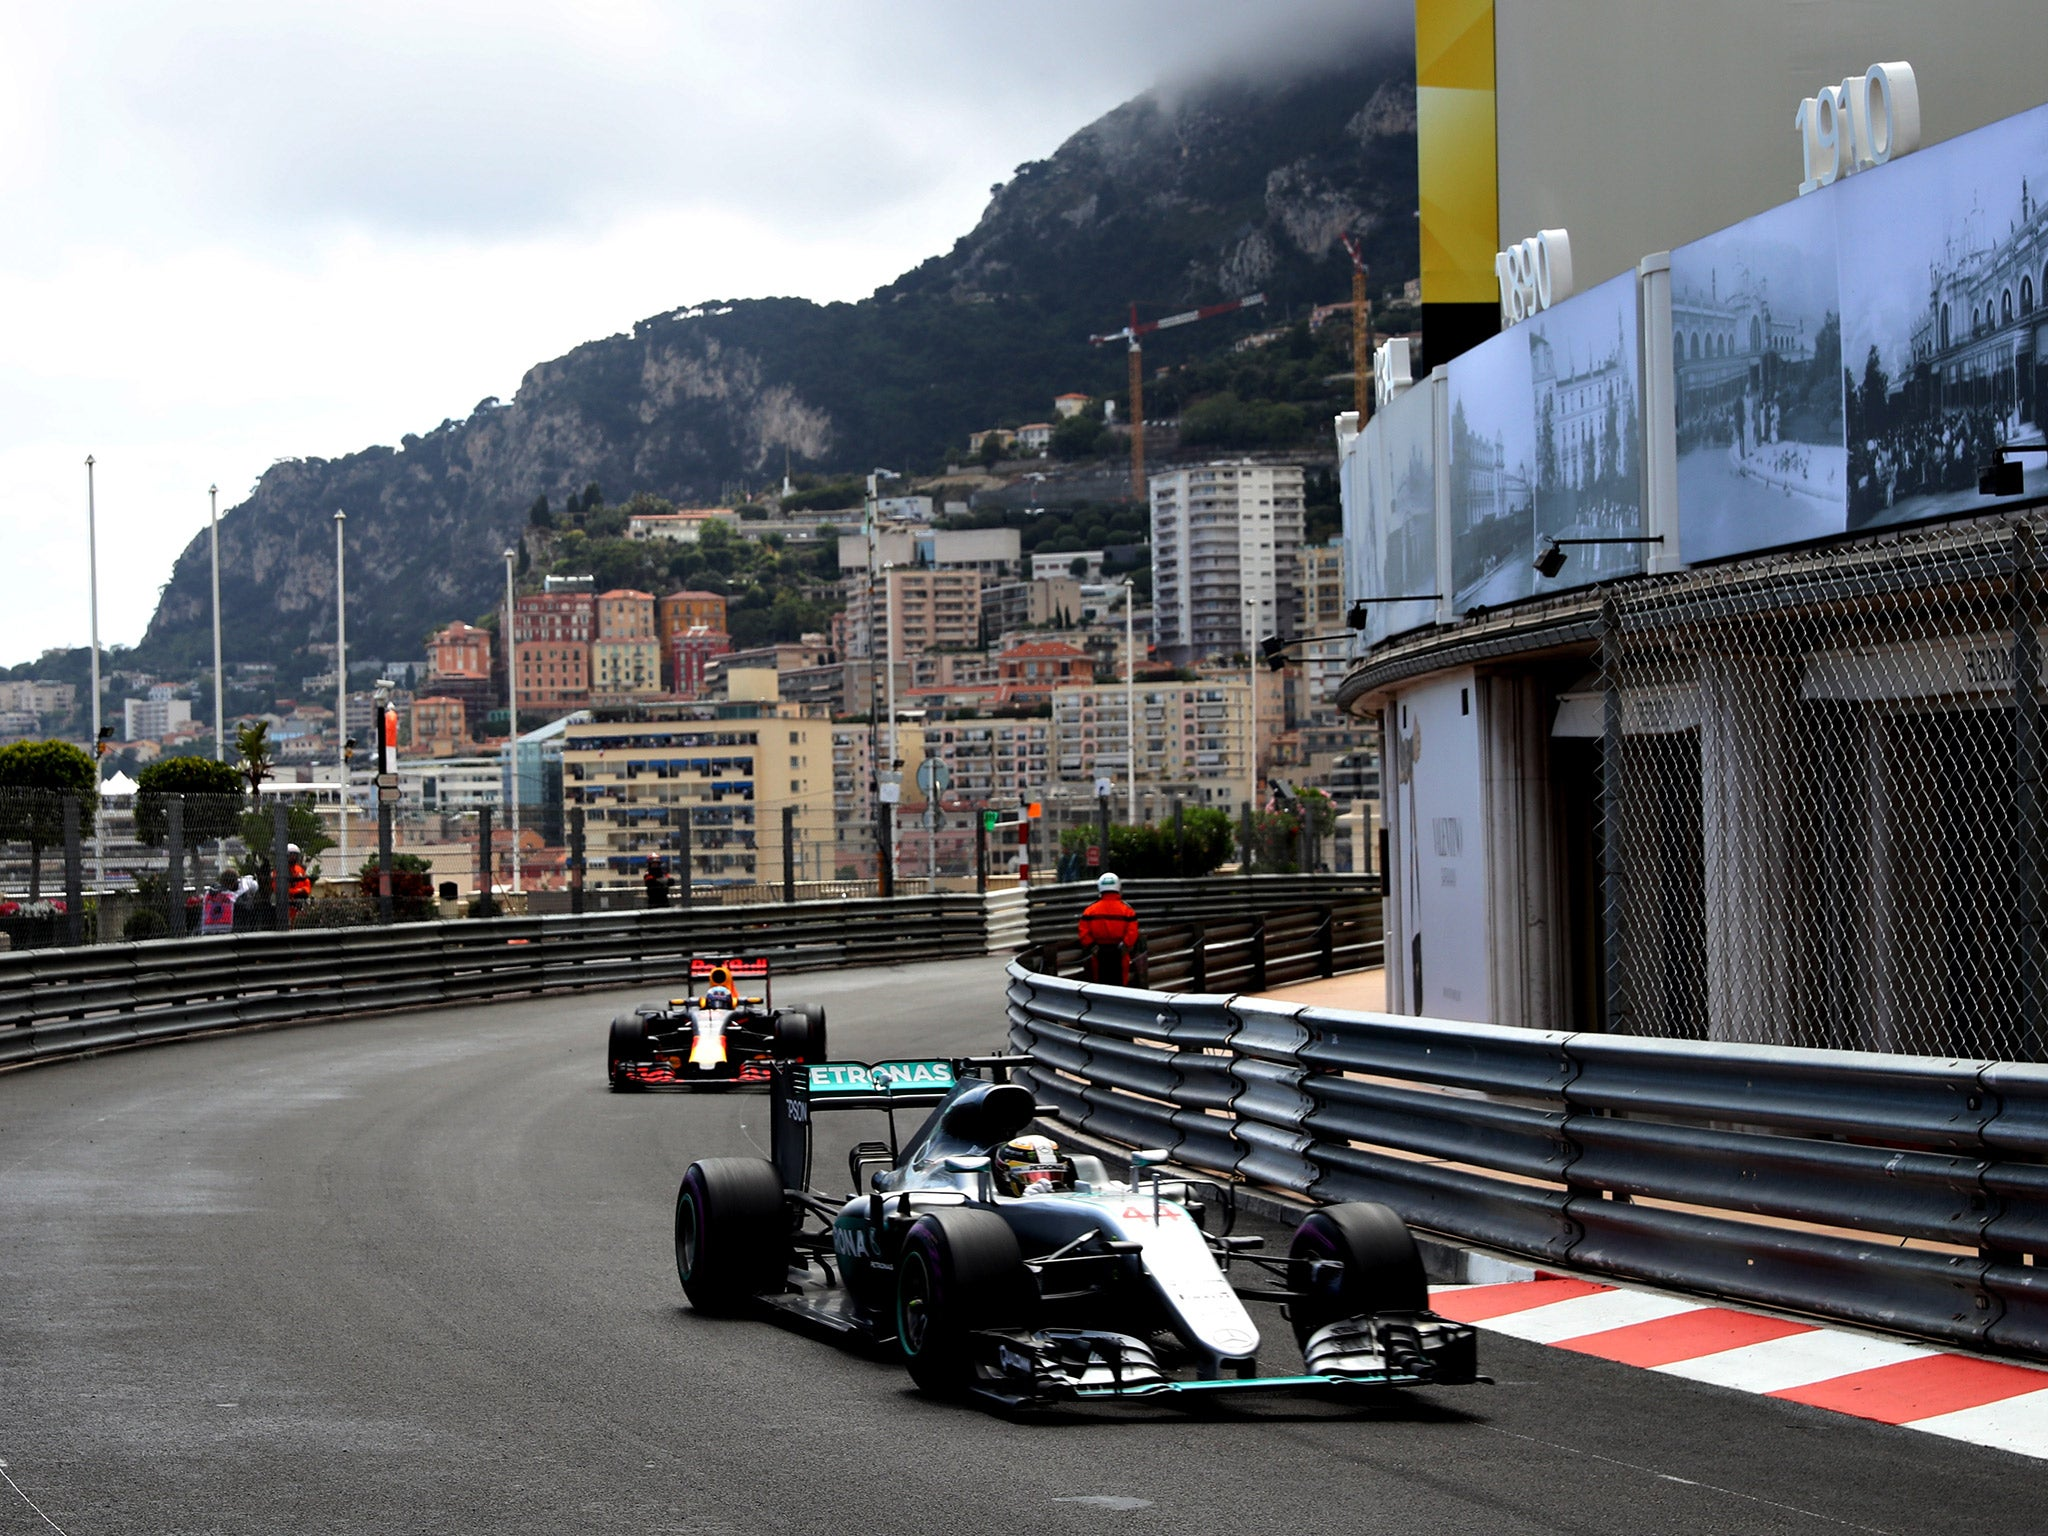 monaco grand prix 2016 live latest as lewis hamilton wins in monte carlo after thrilling battle. Black Bedroom Furniture Sets. Home Design Ideas